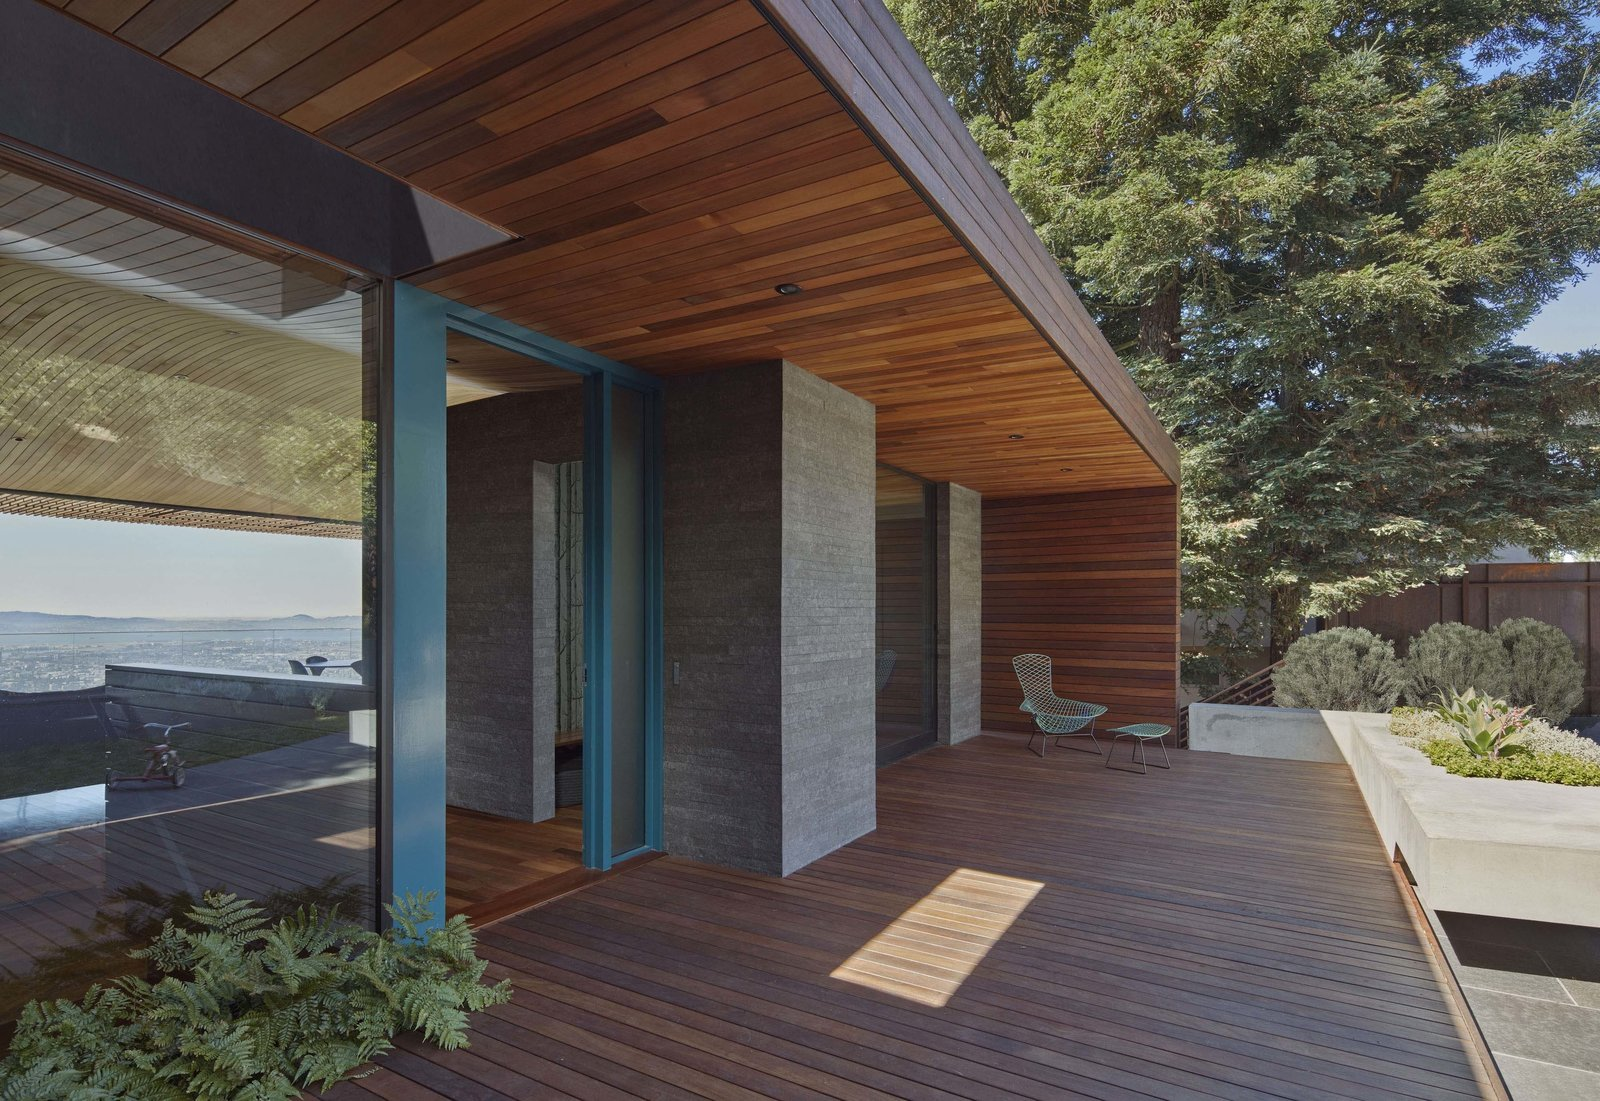 Outdoor, Front Yard, Grass, Shrubs, Hardscapes, Small Patio, Porch, Deck, Wood Patio, Porch, Deck, Metal Fences, Wall, and Landscape Lighting Entry porch  Skyline House by Terry & Terry Architecture